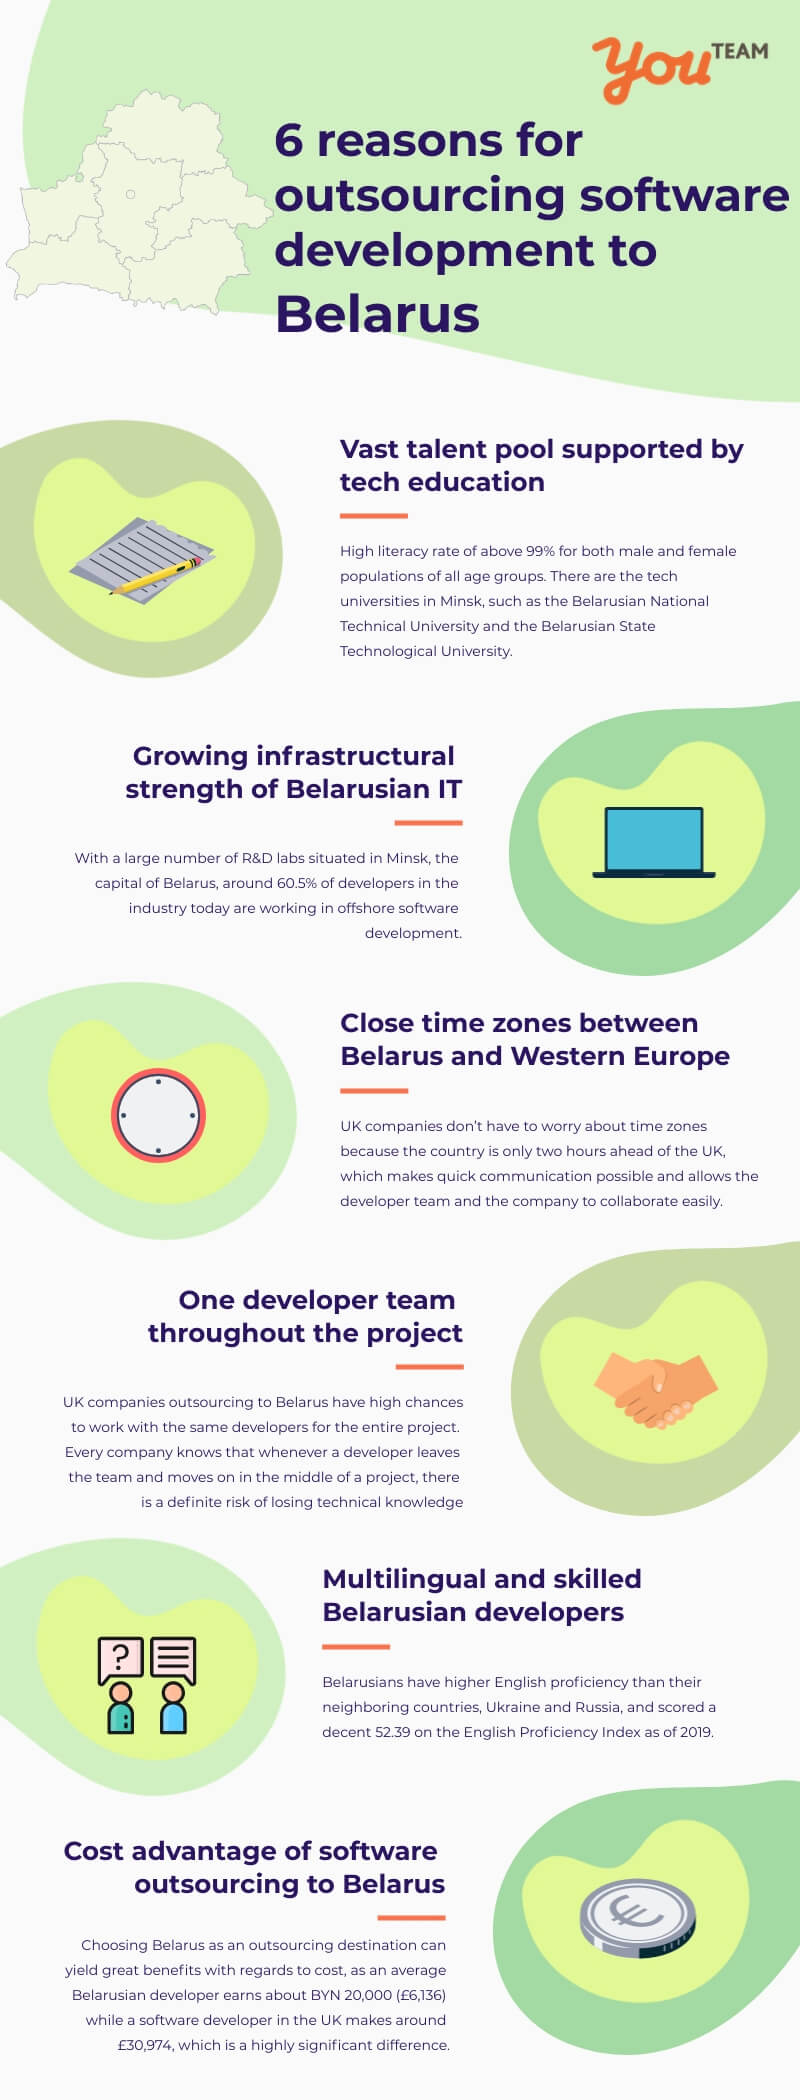 Hire developers from Belarus